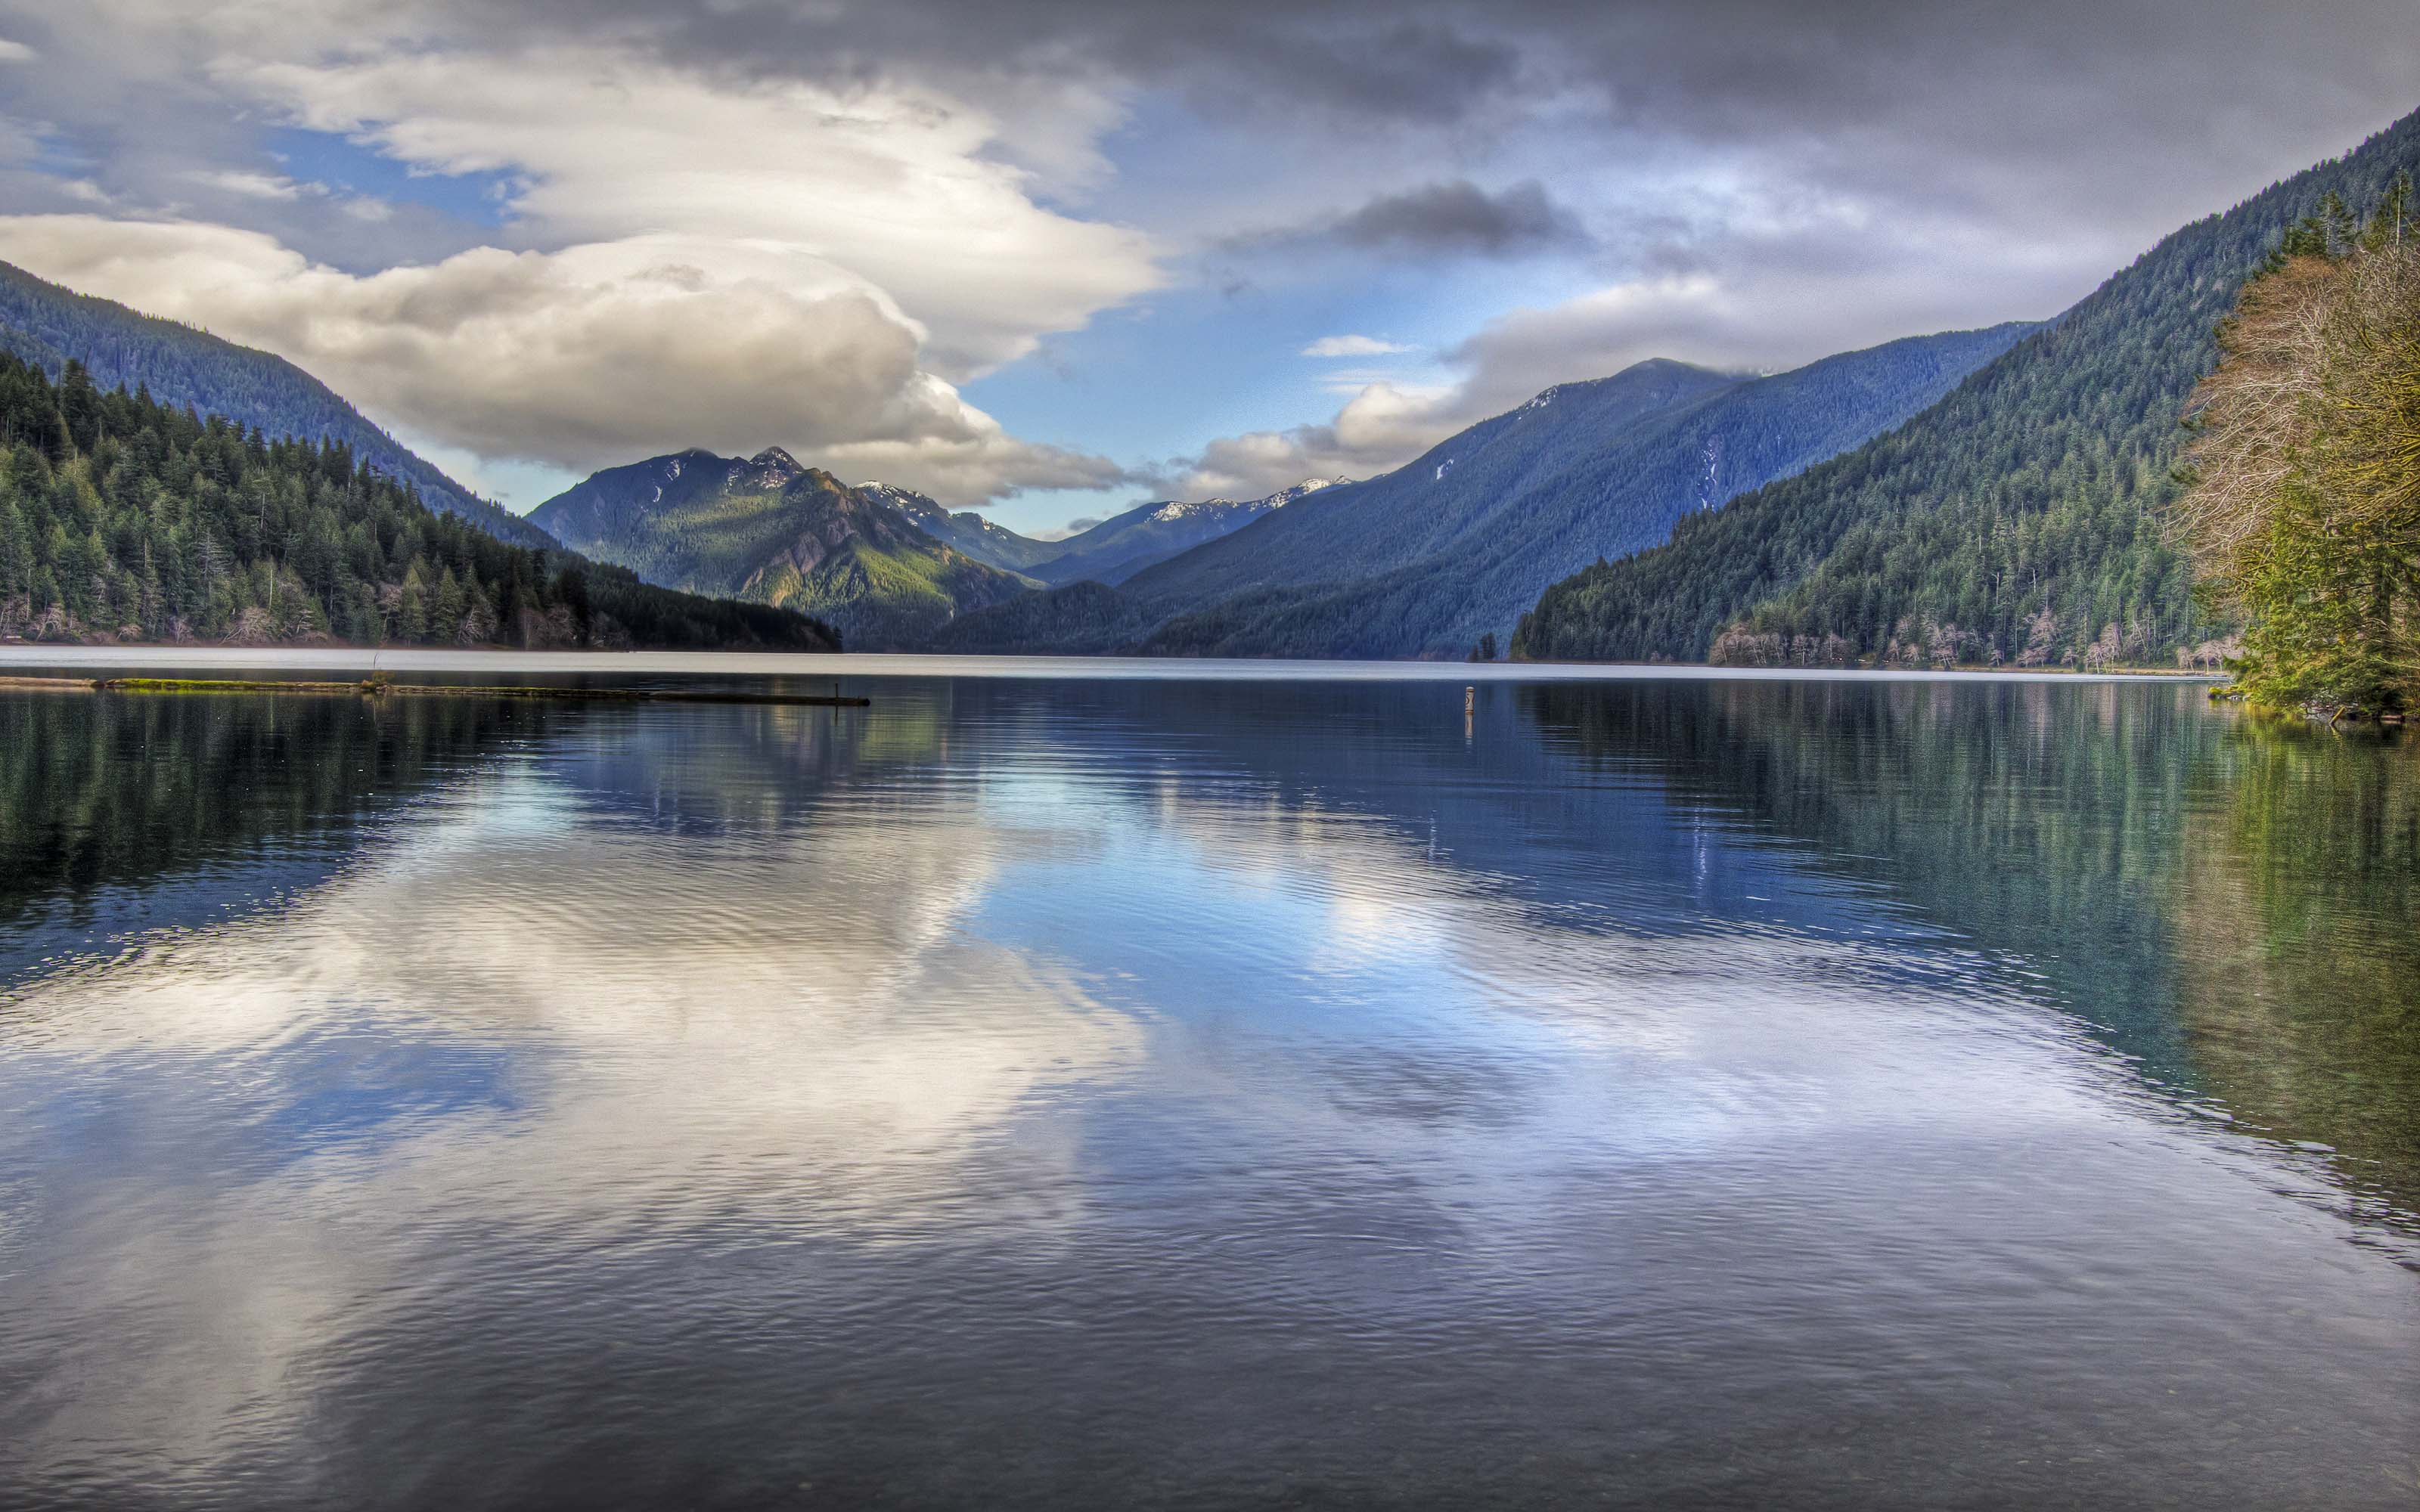 River Wallpapers Hd Lake Crescent Located In Northwest Washington Wallpaper